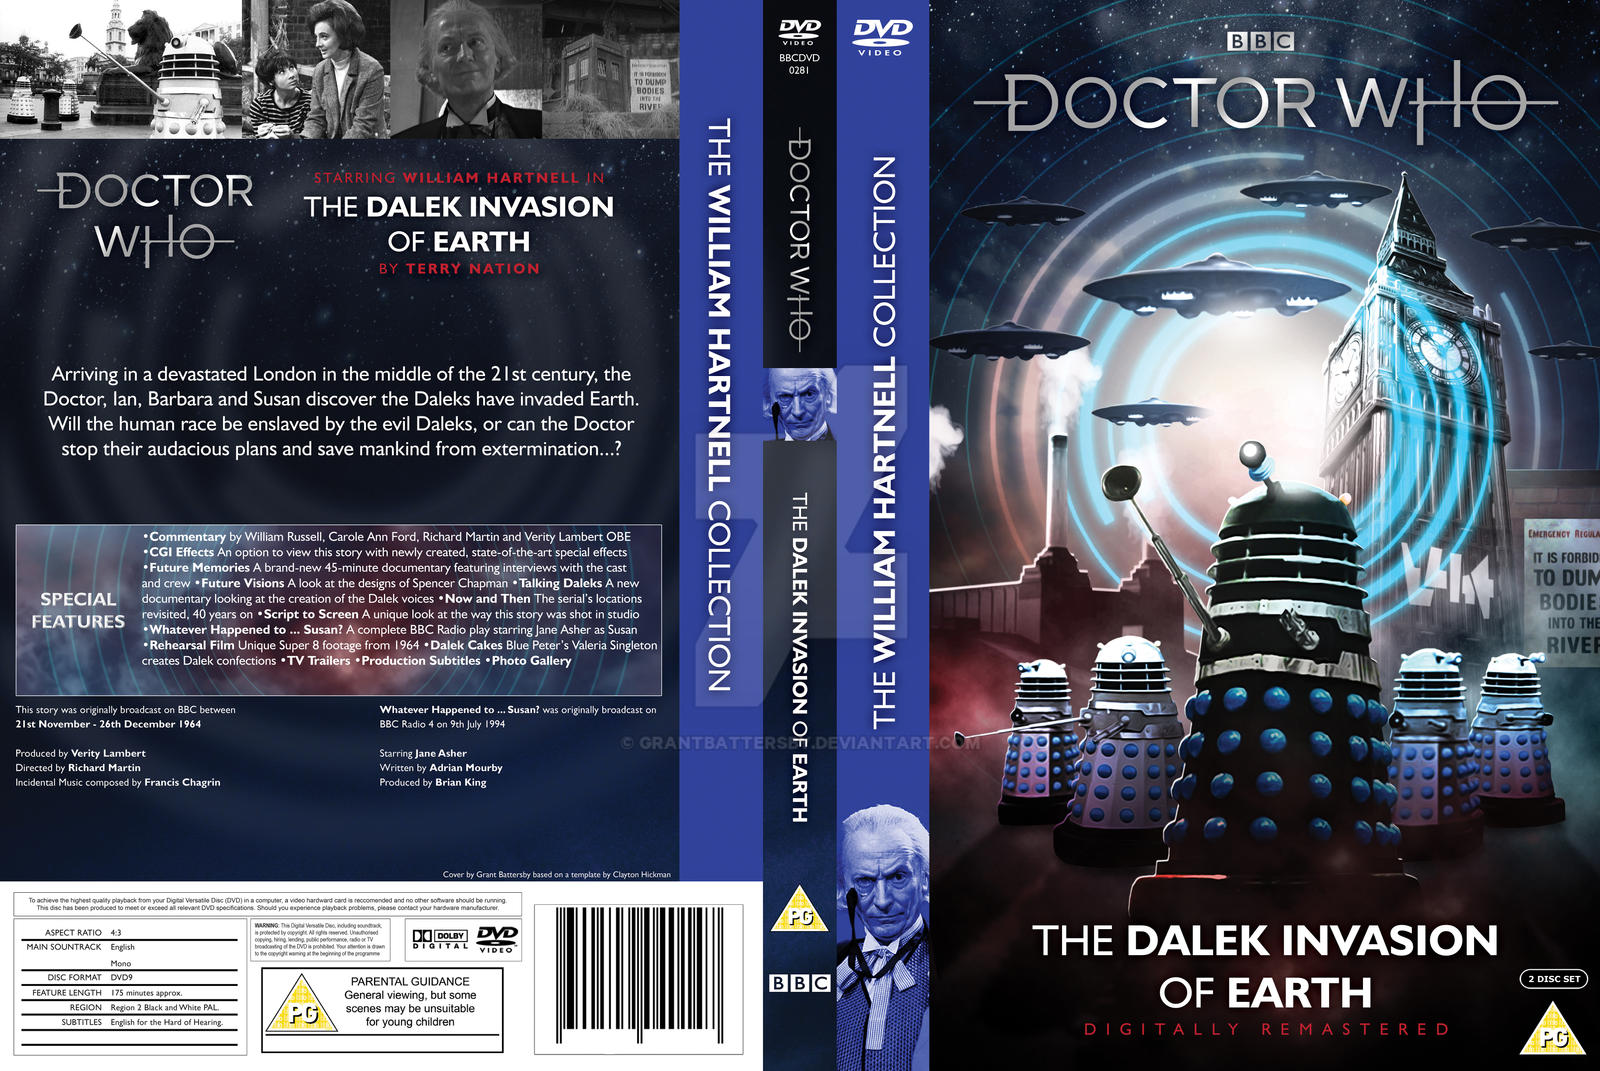 Dalek Invasion of Earth DVD reworked